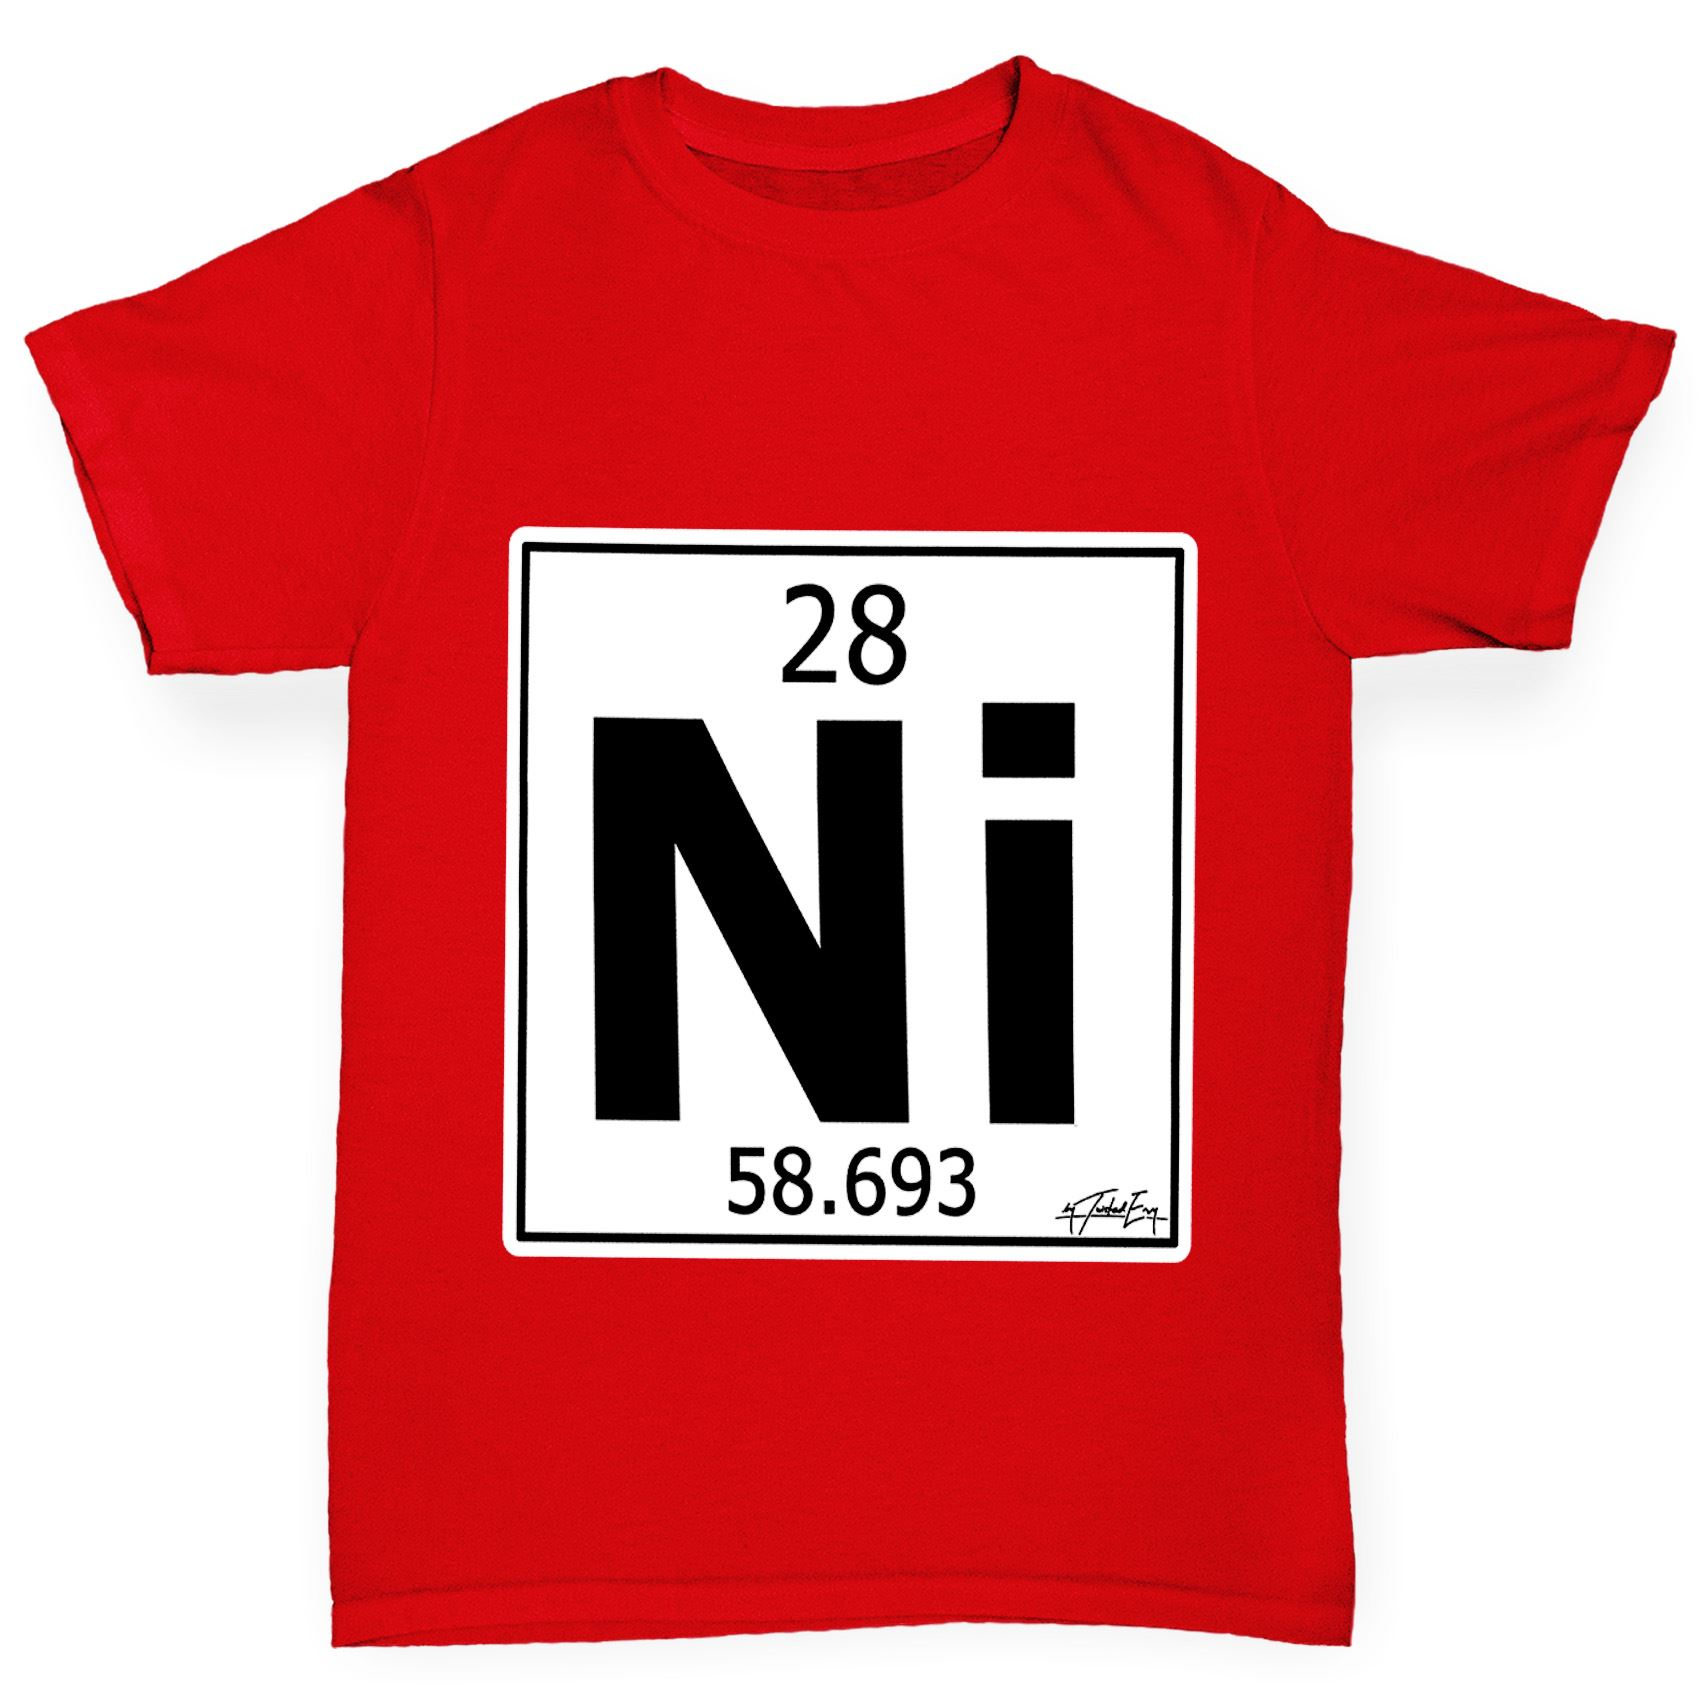 Twisted envy boys periodic table element ni nickel t shirt ebay twisted envy boy 039 s periodic table element gamestrikefo Image collections